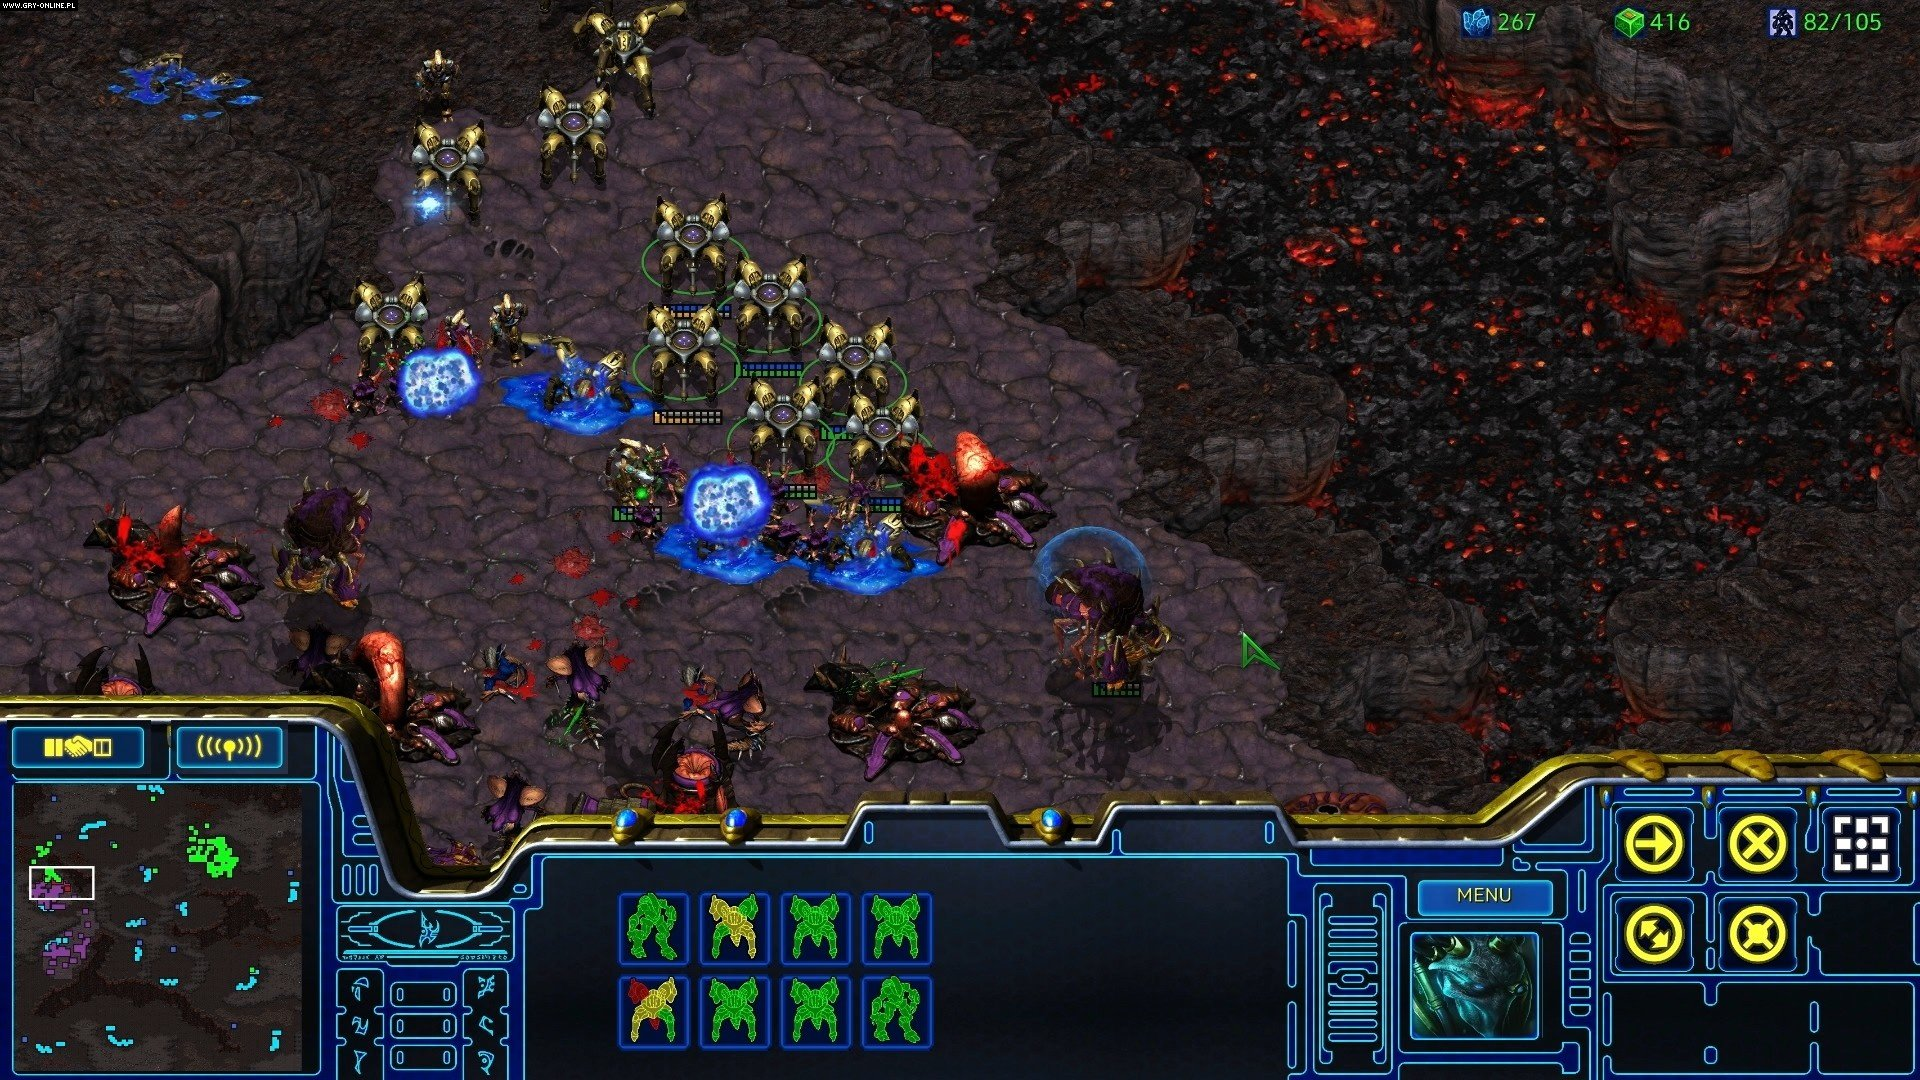 StarCraft: Remastered PC Games Image 1/15, Blizzard Entertainment